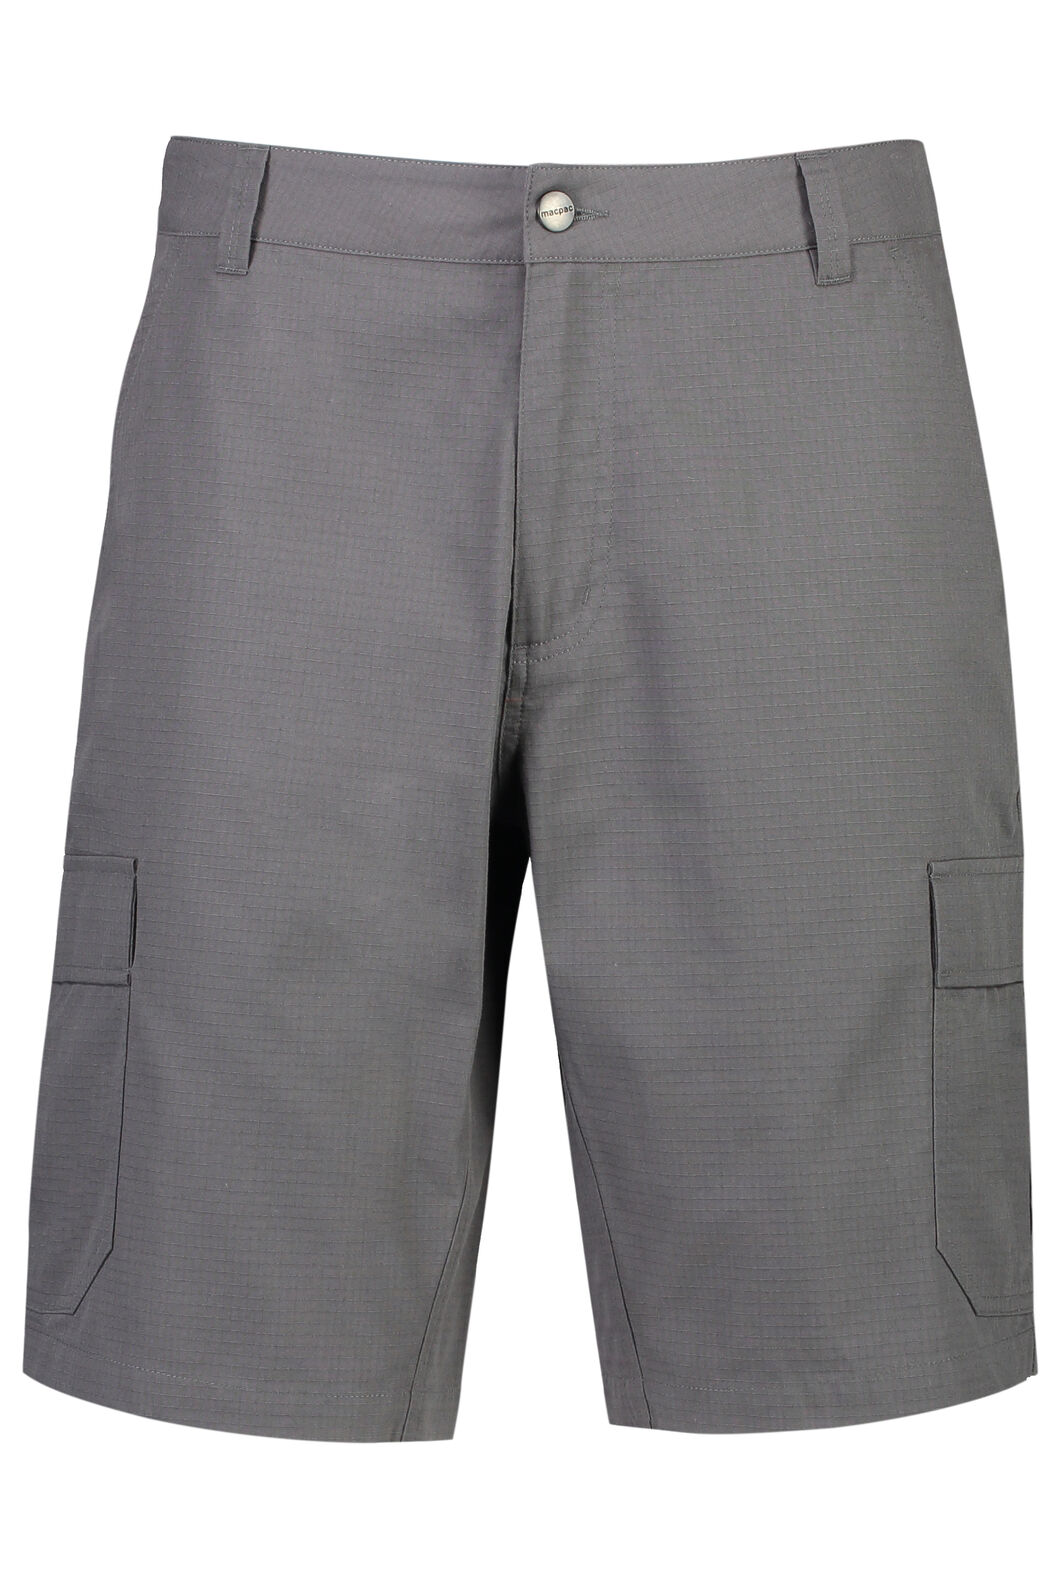 Macpac Onsight Cargo Shorts - Men's, Asphalt, hi-res